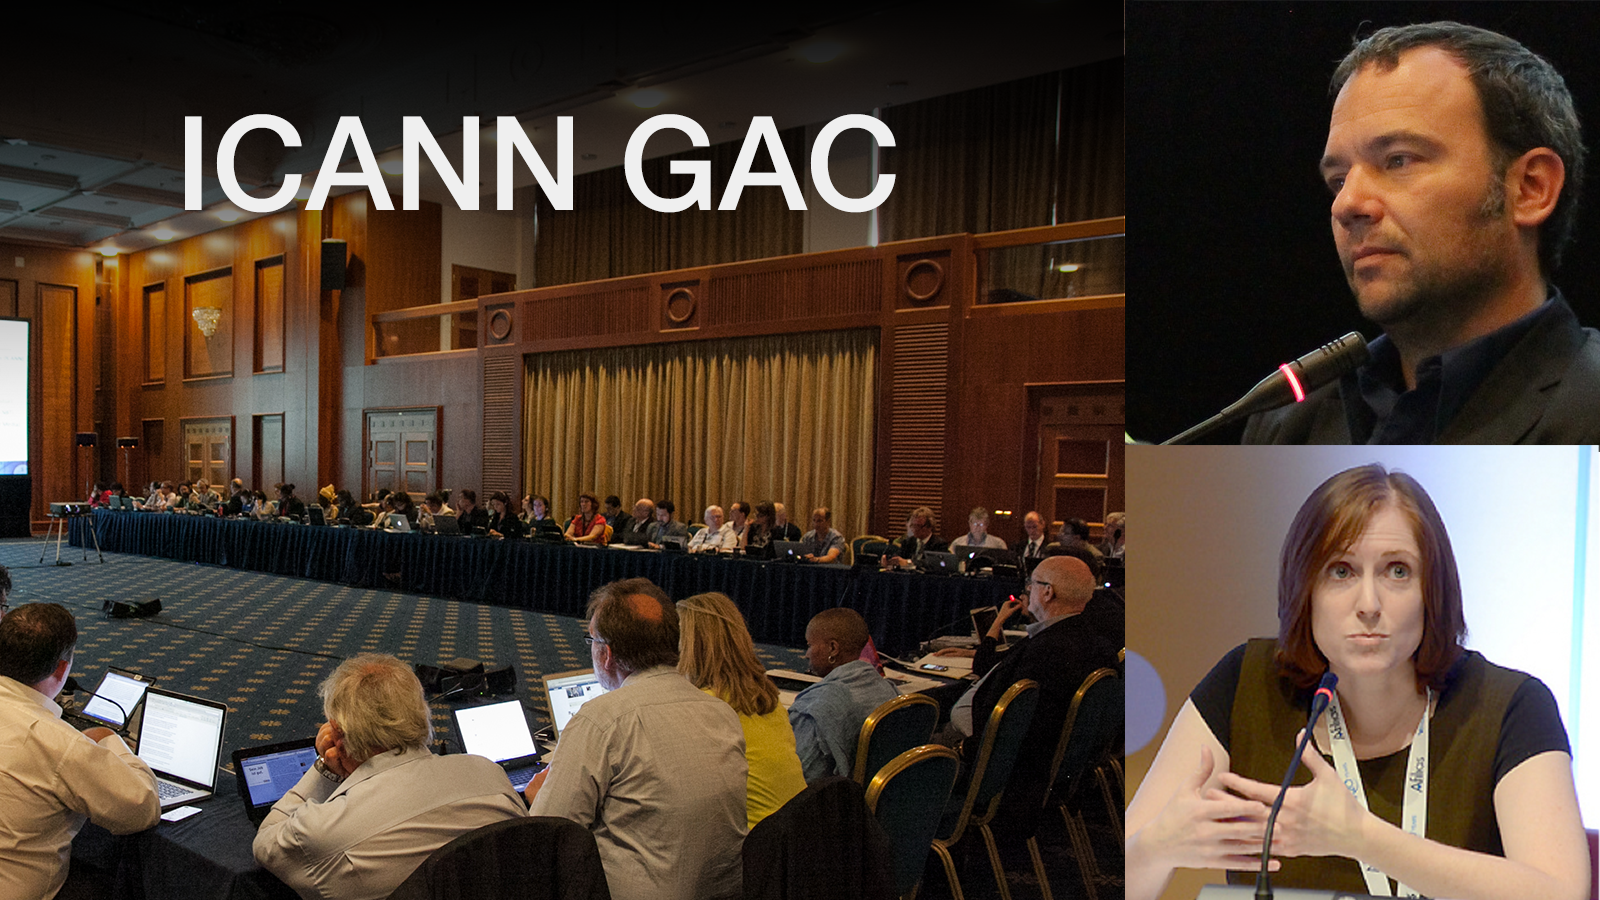 ICANN GAC change at the top (Photo Credits: ICANN